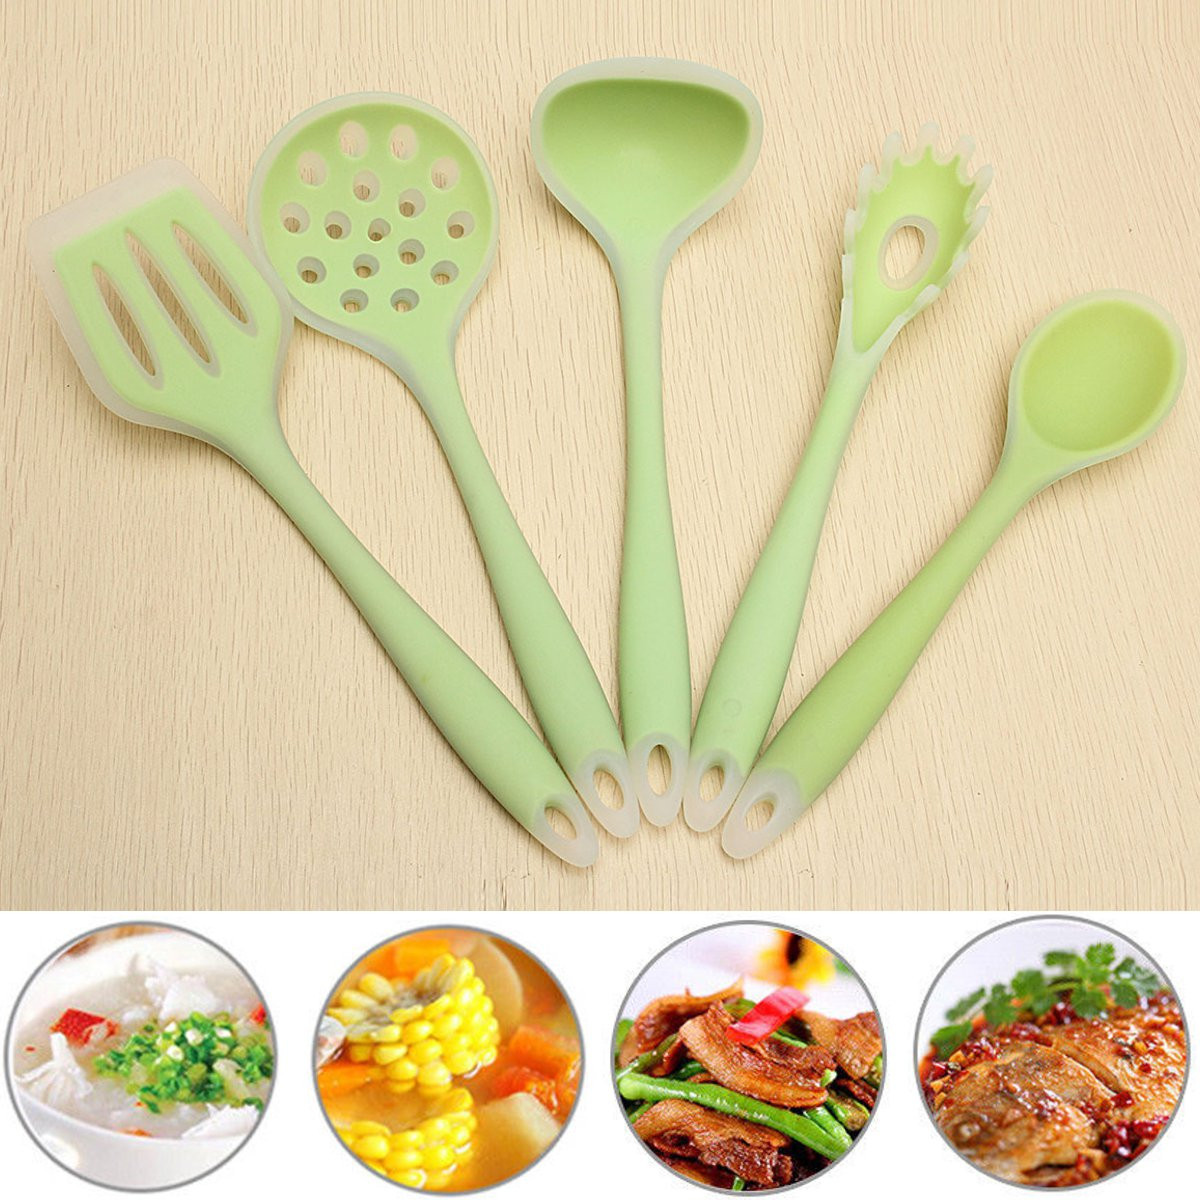 5Pcs Silicone Cooking Utensil Set Set Kitchen Cooking Tools Spoon Spatula Ladle Today's Special Offer!